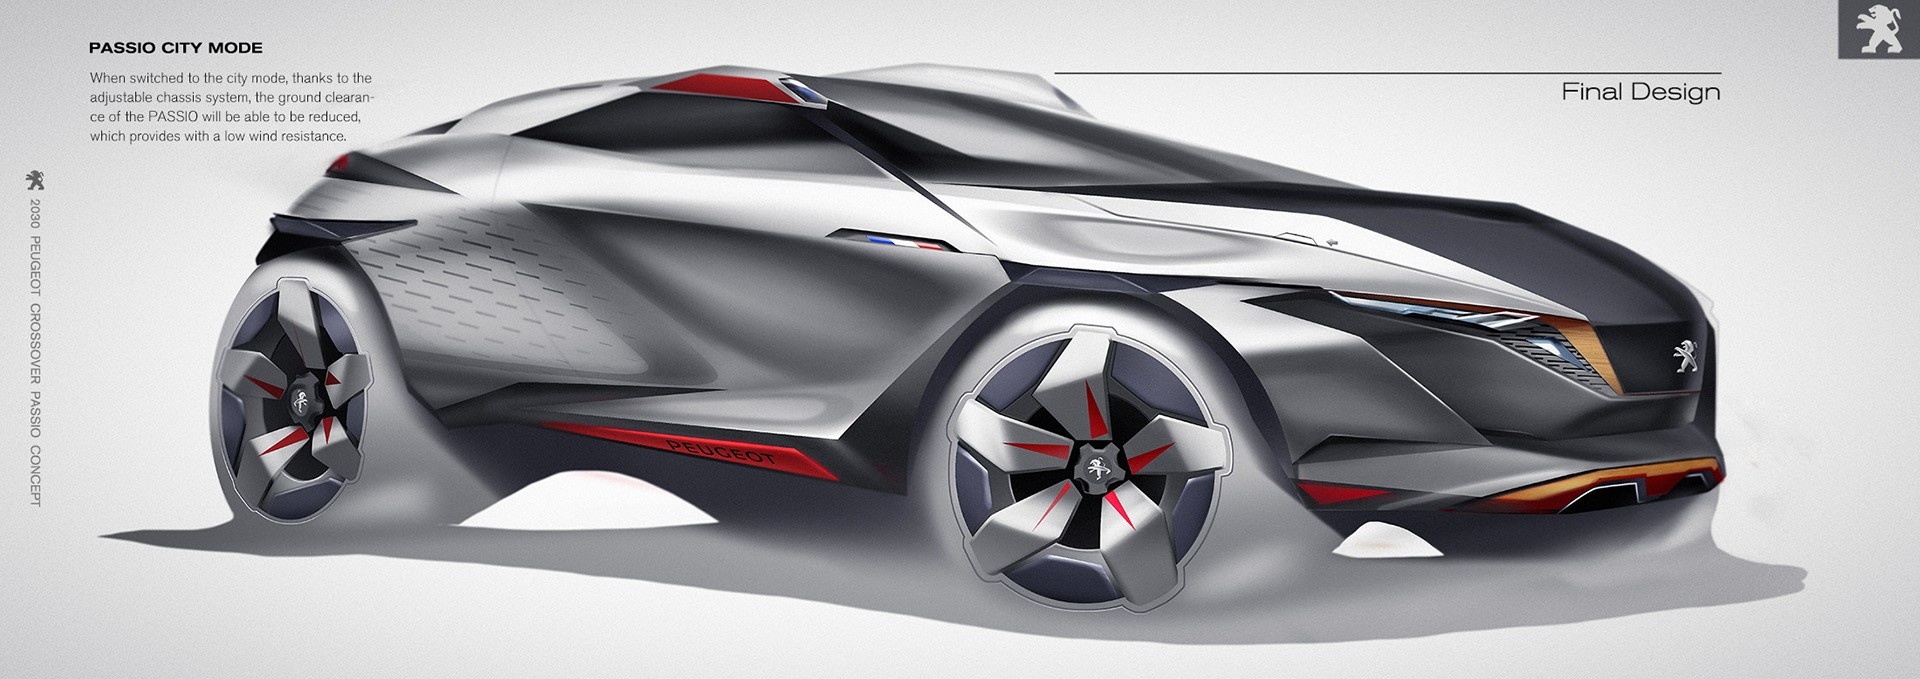 Peugeot PASSIO Is a 2030 Crossover That Will Put the \